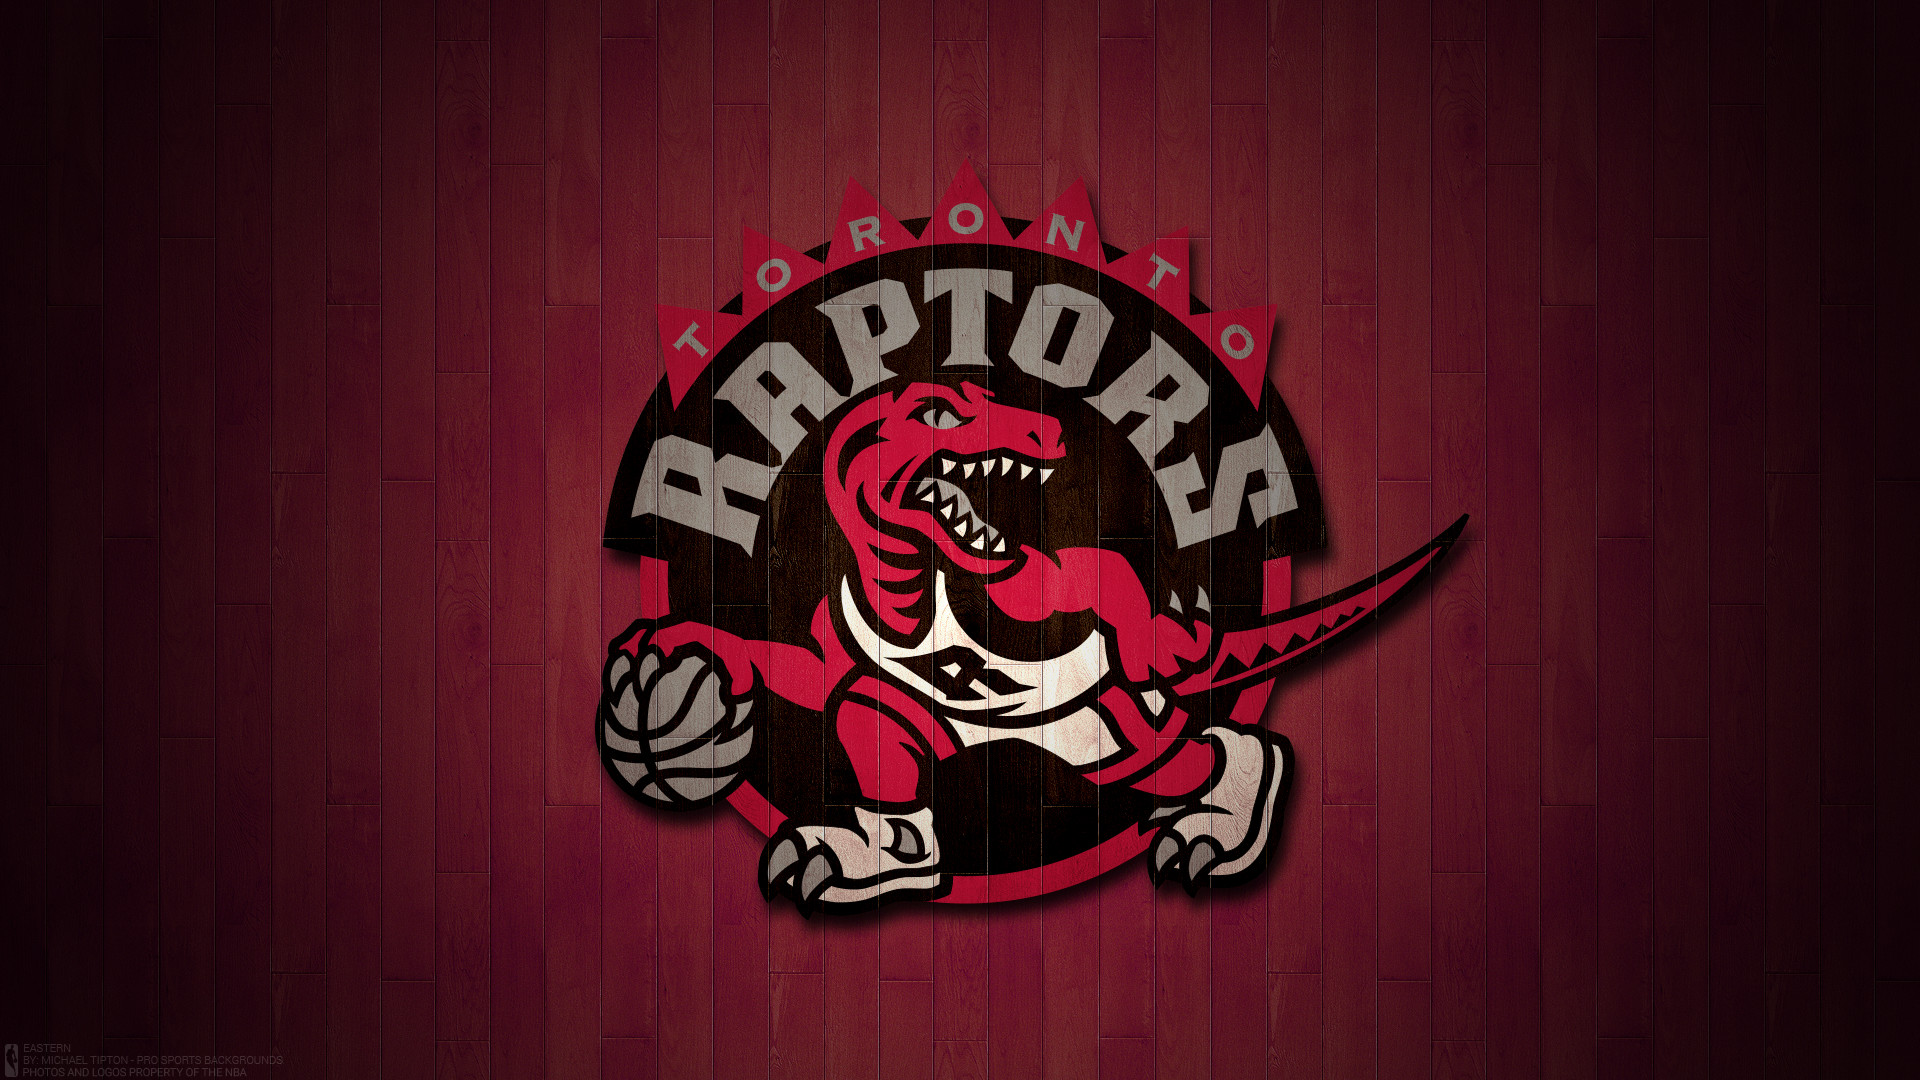 1920x1080 Toronto Raptors 2017 Nba Basketball Team Logo Hardwood Wallpaper Free For Mac And Desktop Pc